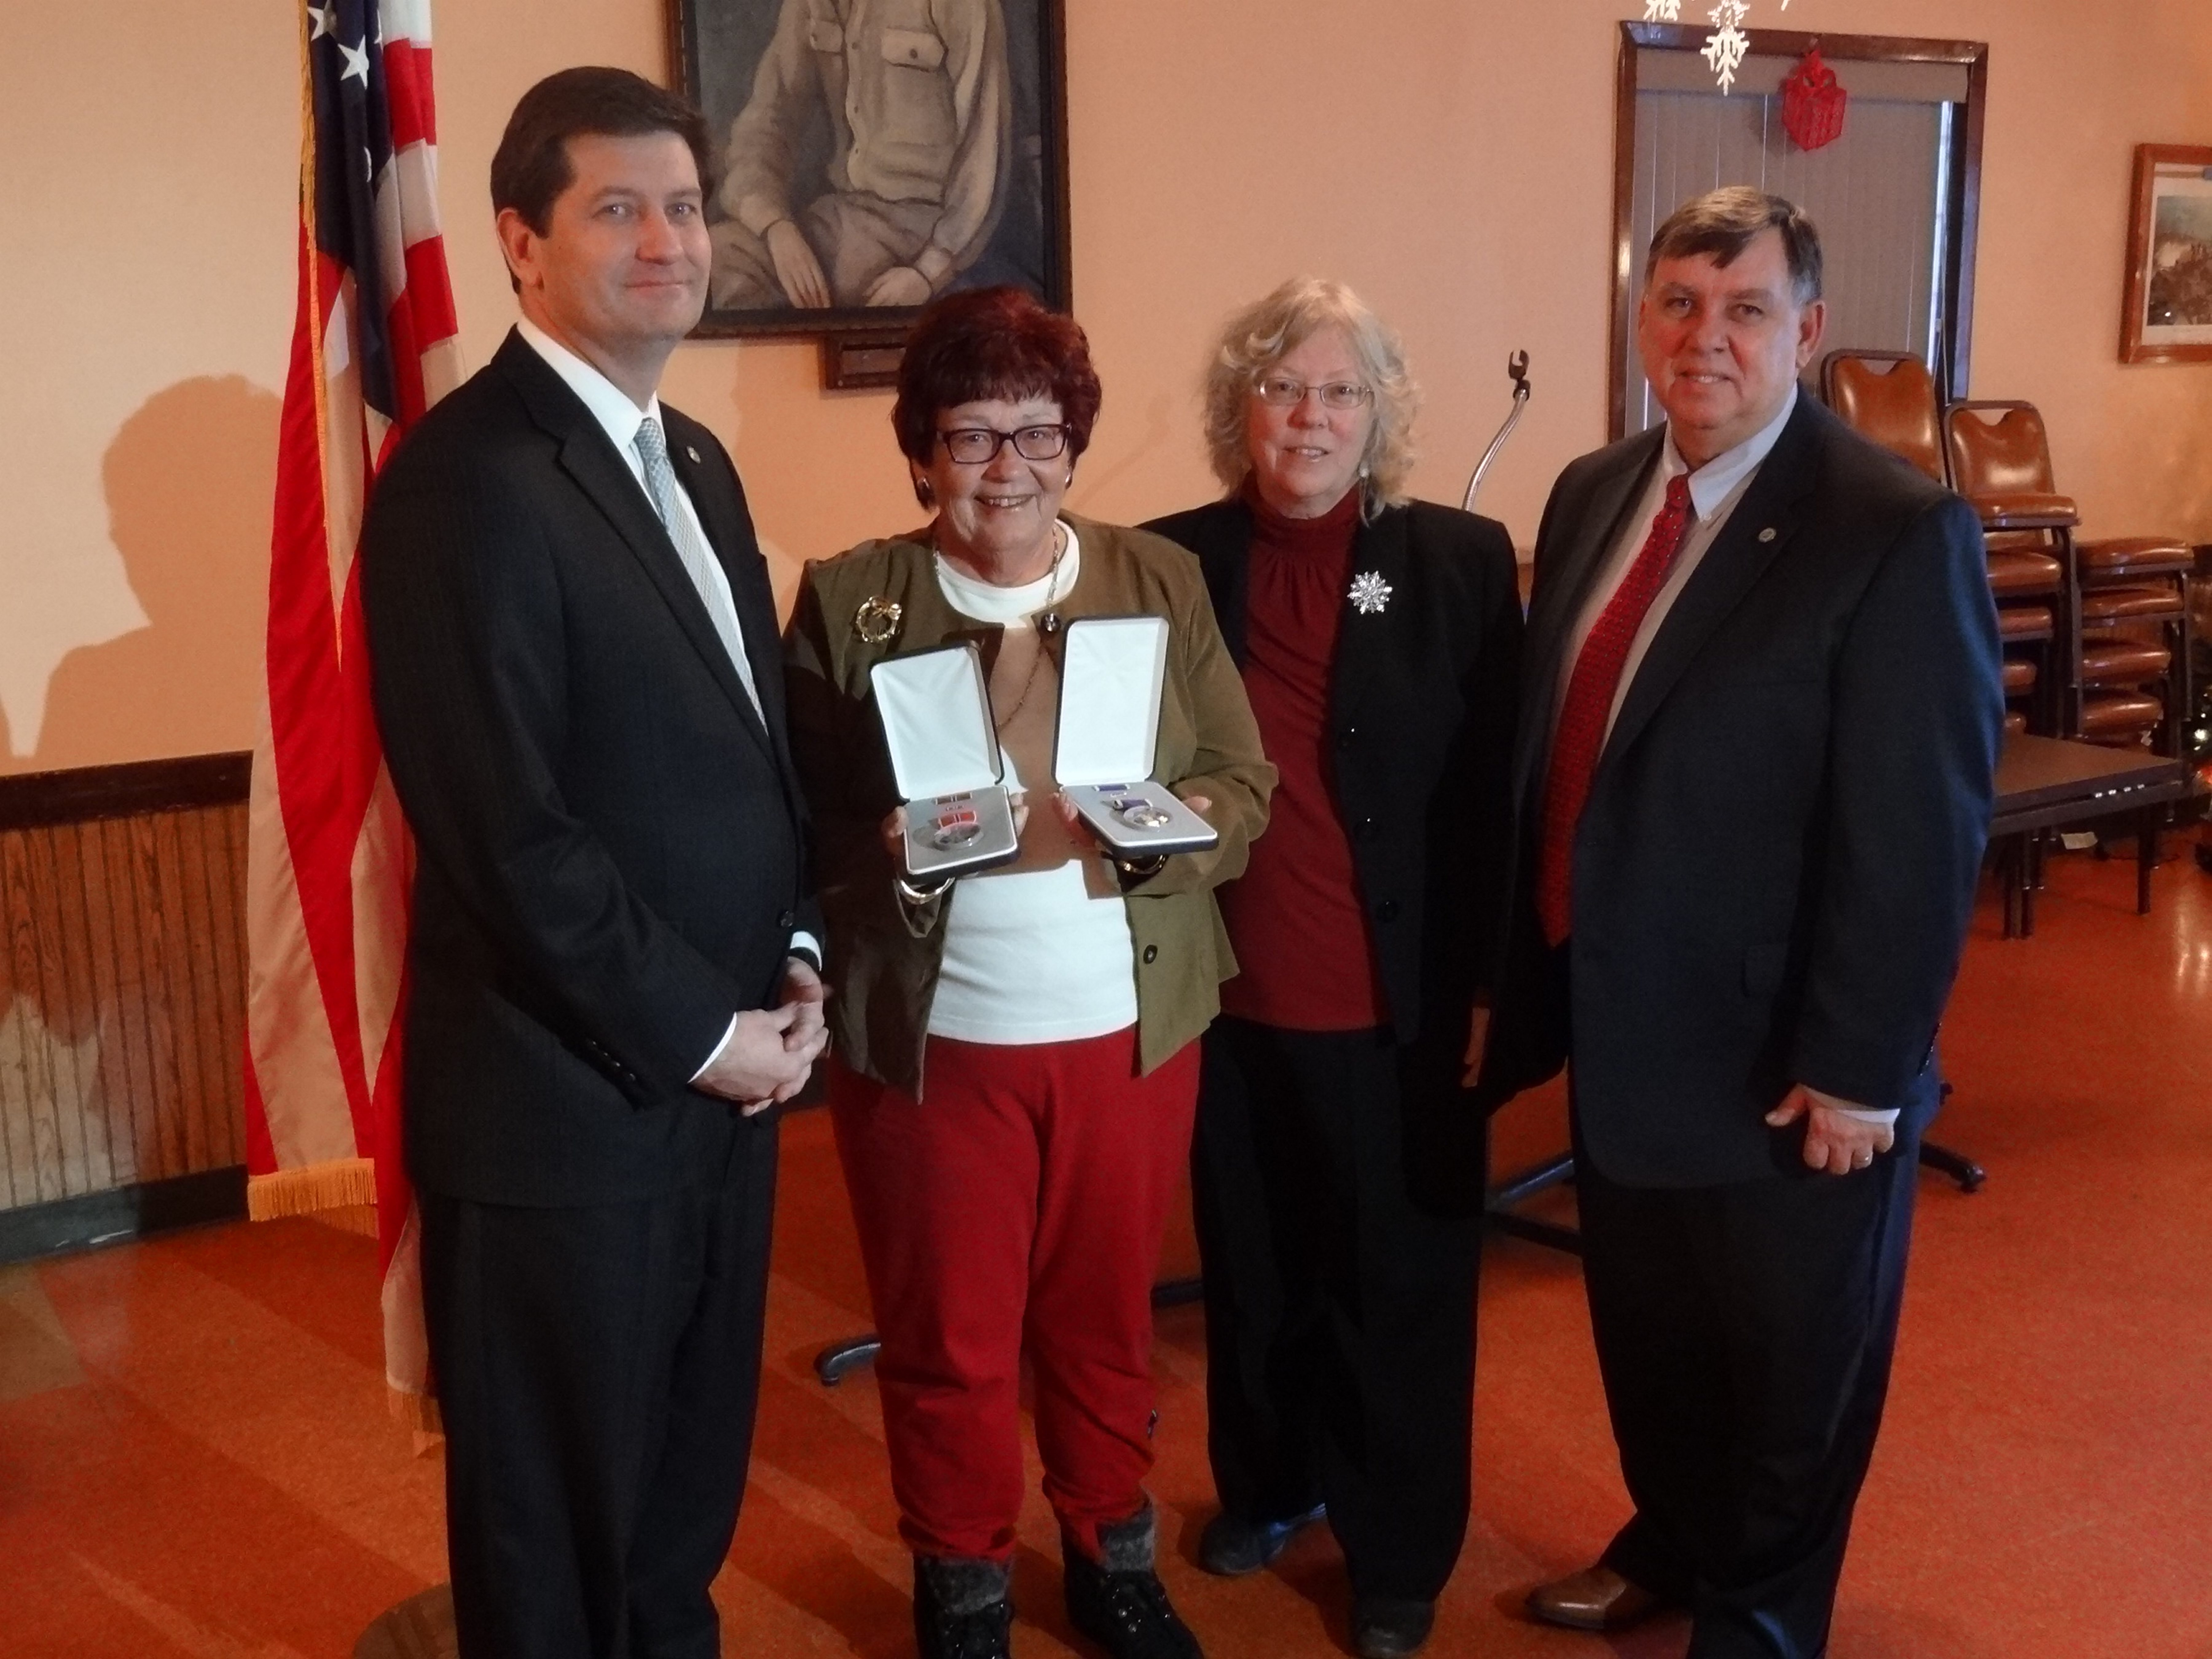 On Monday, Erie County Executive Mark C. Poloncarz, left, presented Rita Dudczak, 2nd left, with the long-lost military service medals of her father, World War II veteran  Vincent Mikolajczyk, who died in 1983. Also attending the presentation were Francis McLaughlin, right, director of the county Veteran Service Agency, and Felice Krycia, the agency's assistant director.